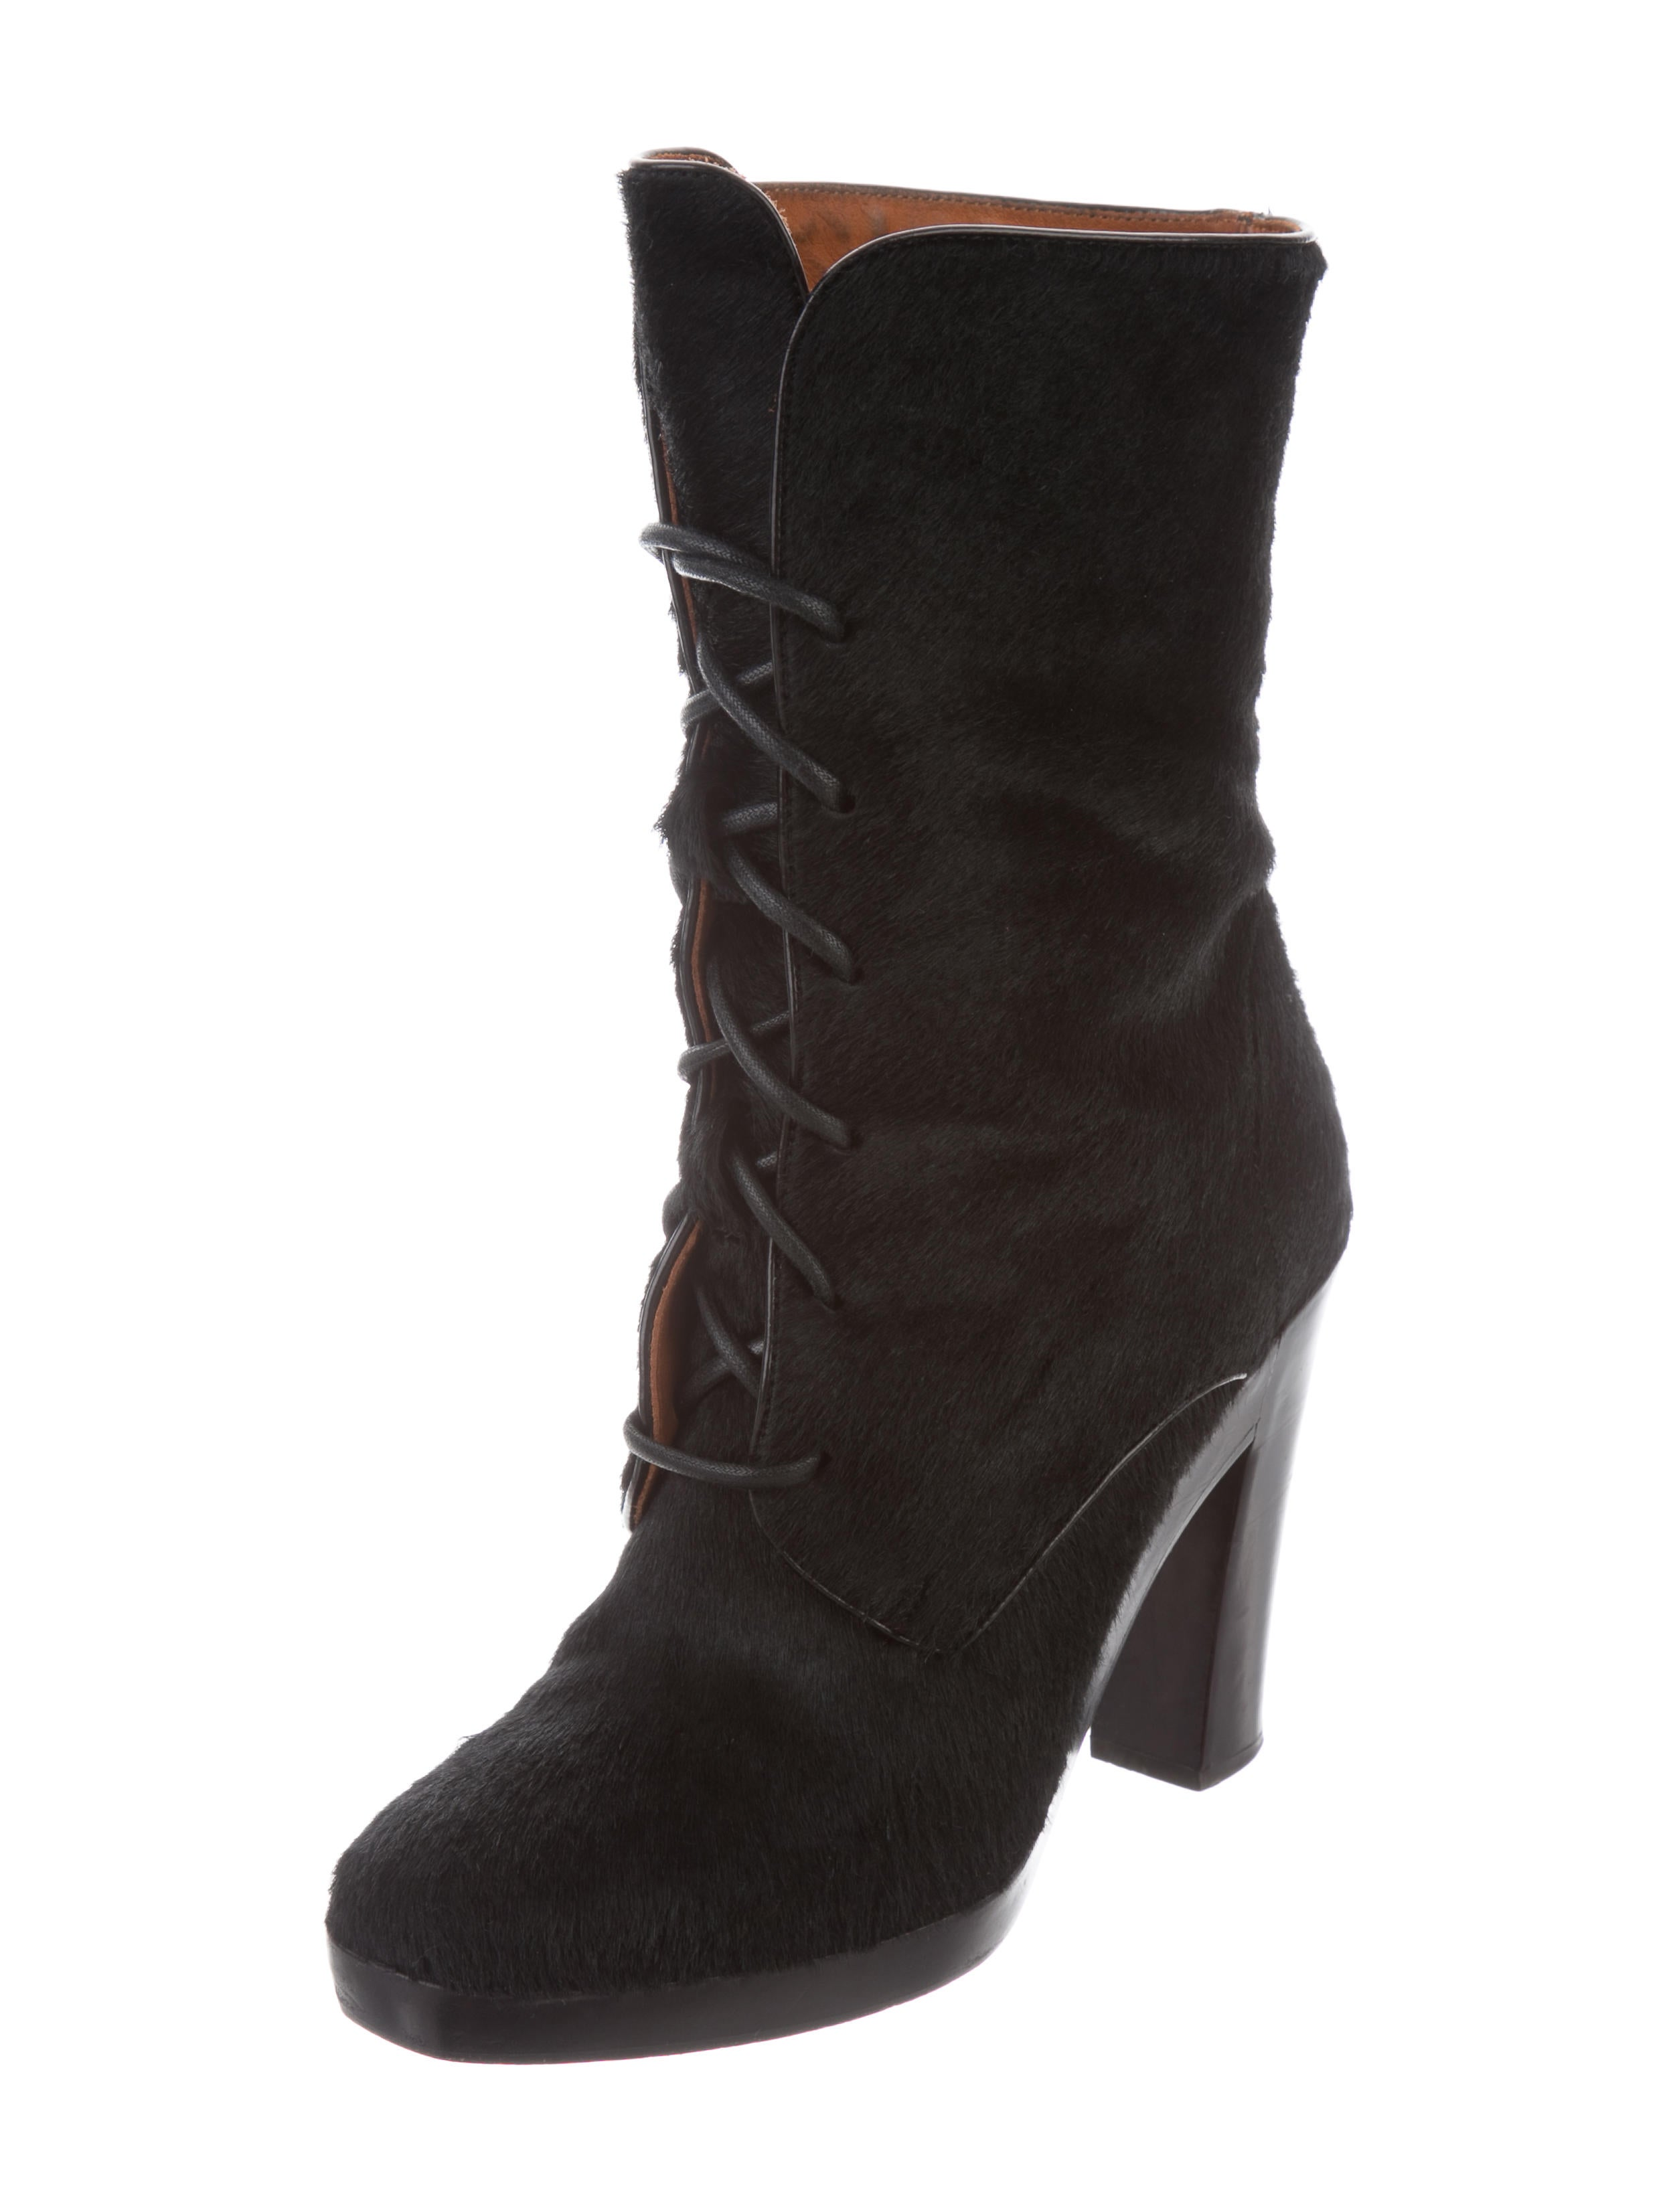 outlet new cheap sale enjoy Reed Krakoff Ponyhair Ankle Boots 5gFtvm